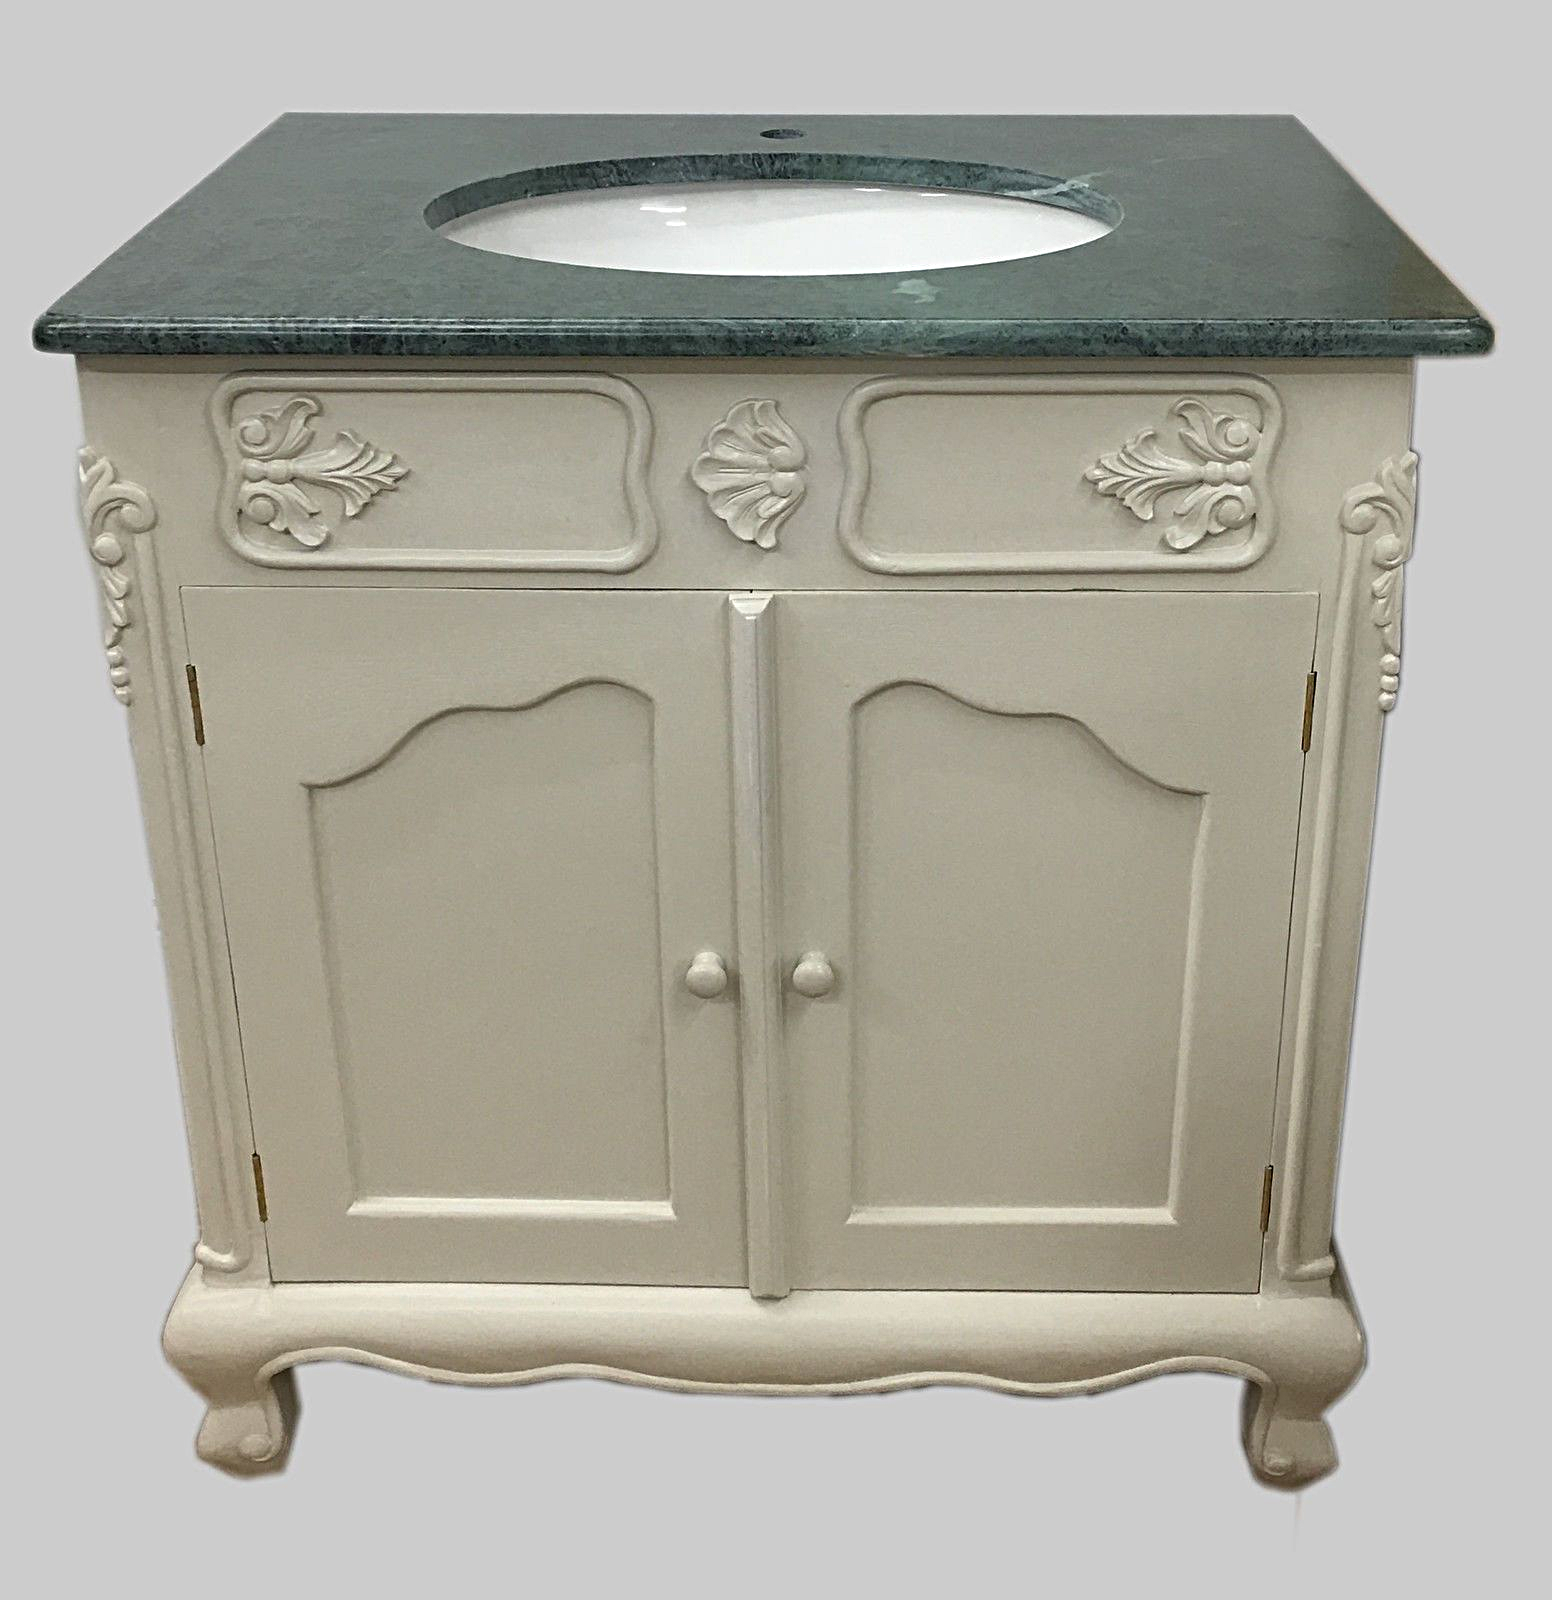 bespoke rectangular sink vanity unit with solid marble top